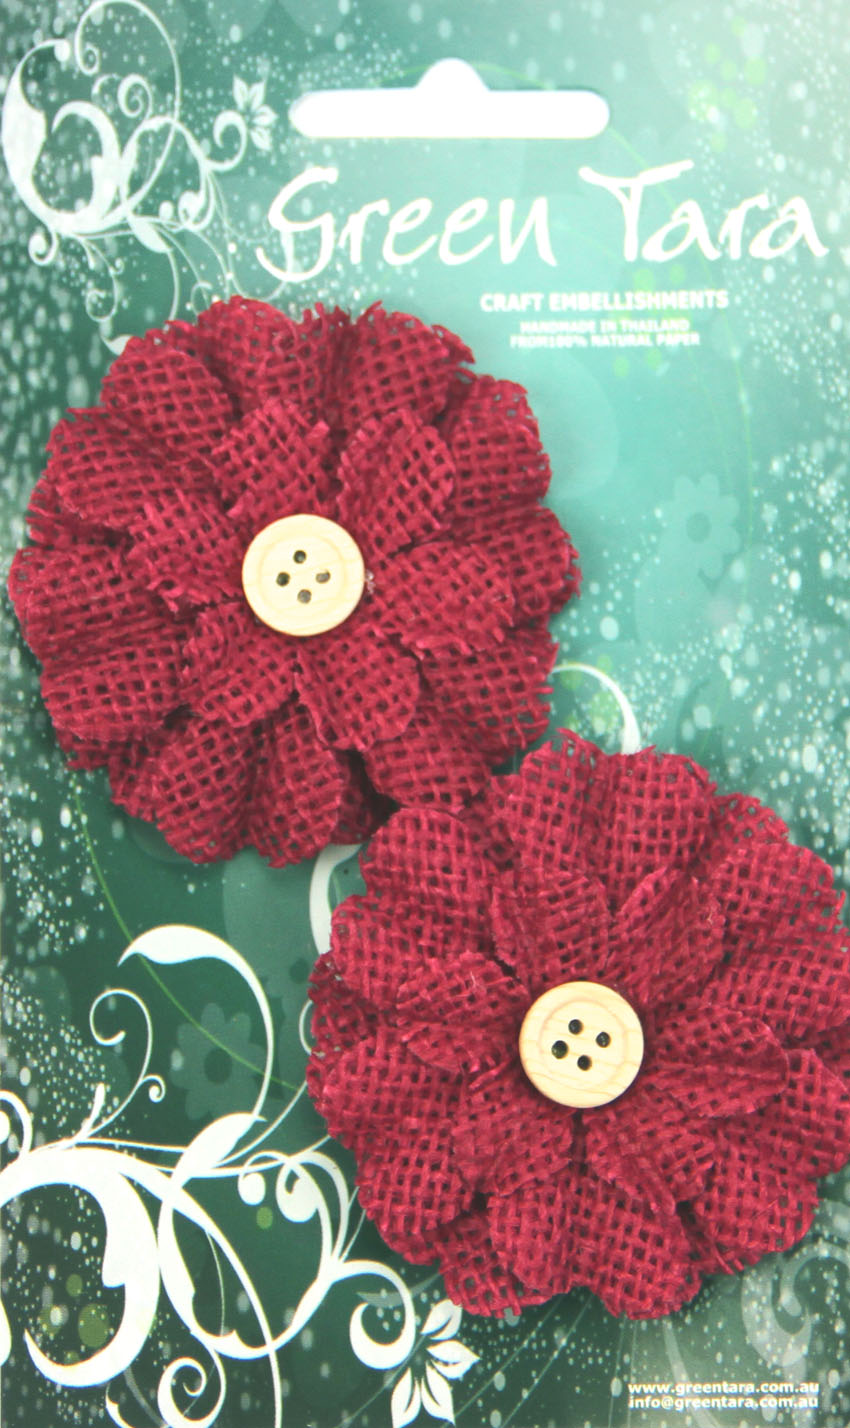 5cm Burlap Flower with Button, Red. Retail Pack of 2.